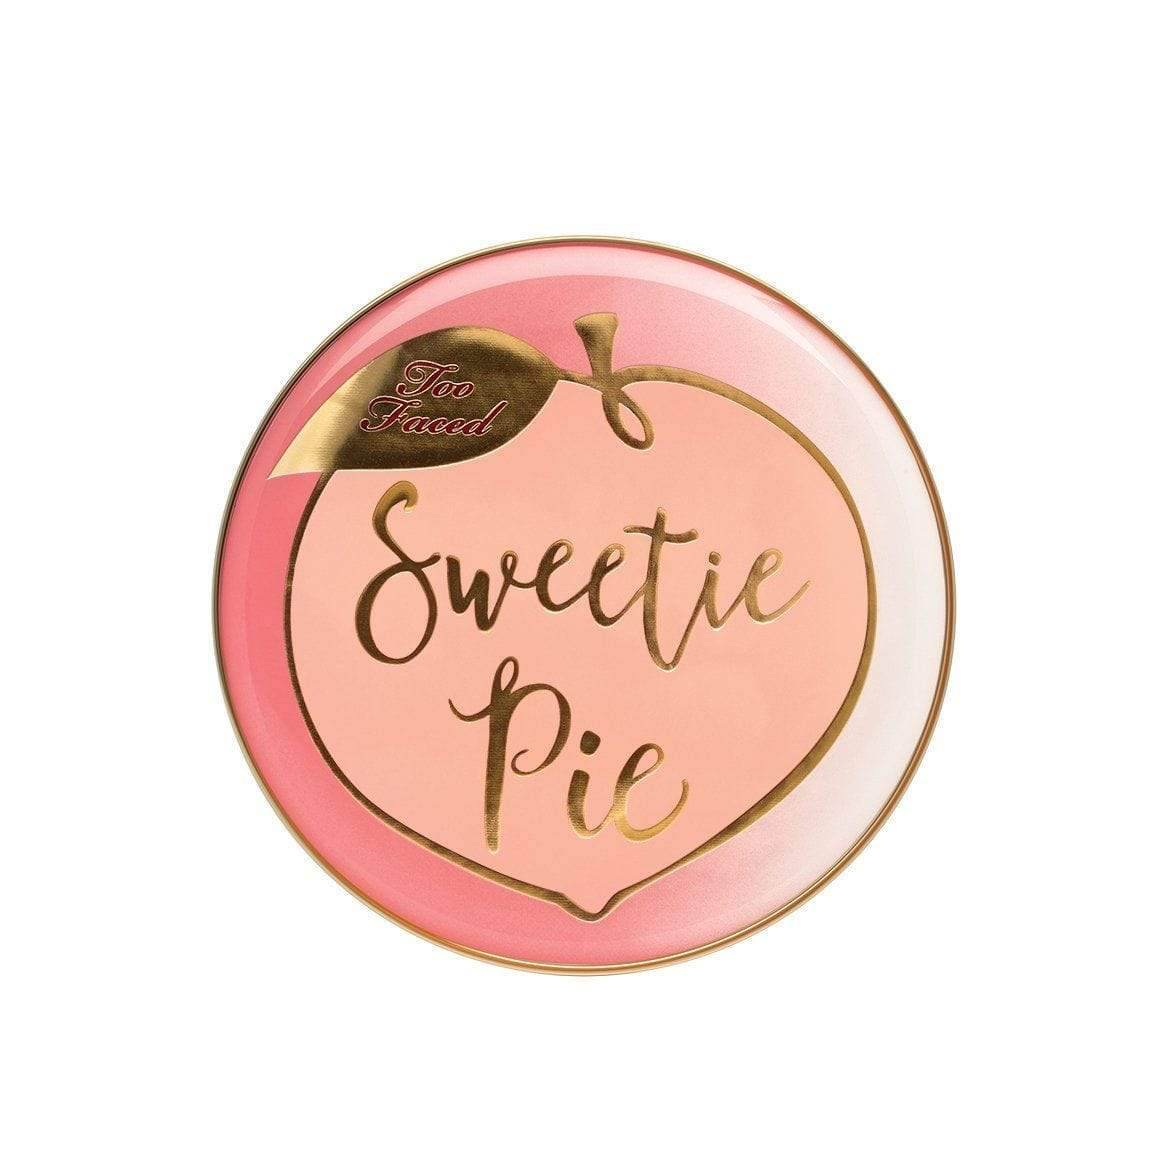 Too Faced Sweetie Pie Radiant Matte Bronzer – Peaches and Cream Collection, bronzer, London Loves Beauty